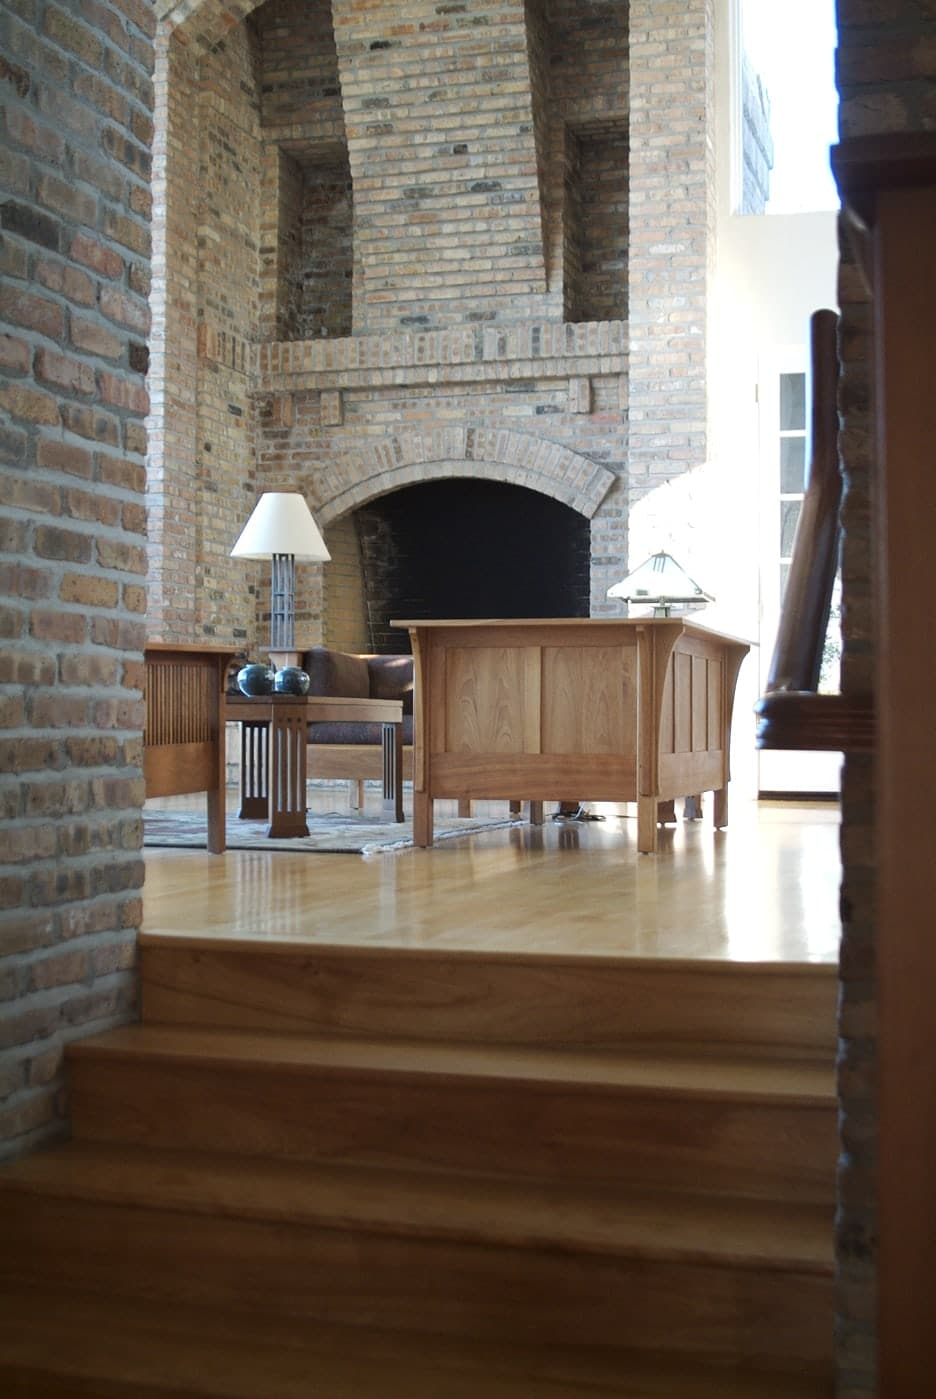 Interior of the Kraffert house. You can view the veneer brick throughout the interior of the ample room.